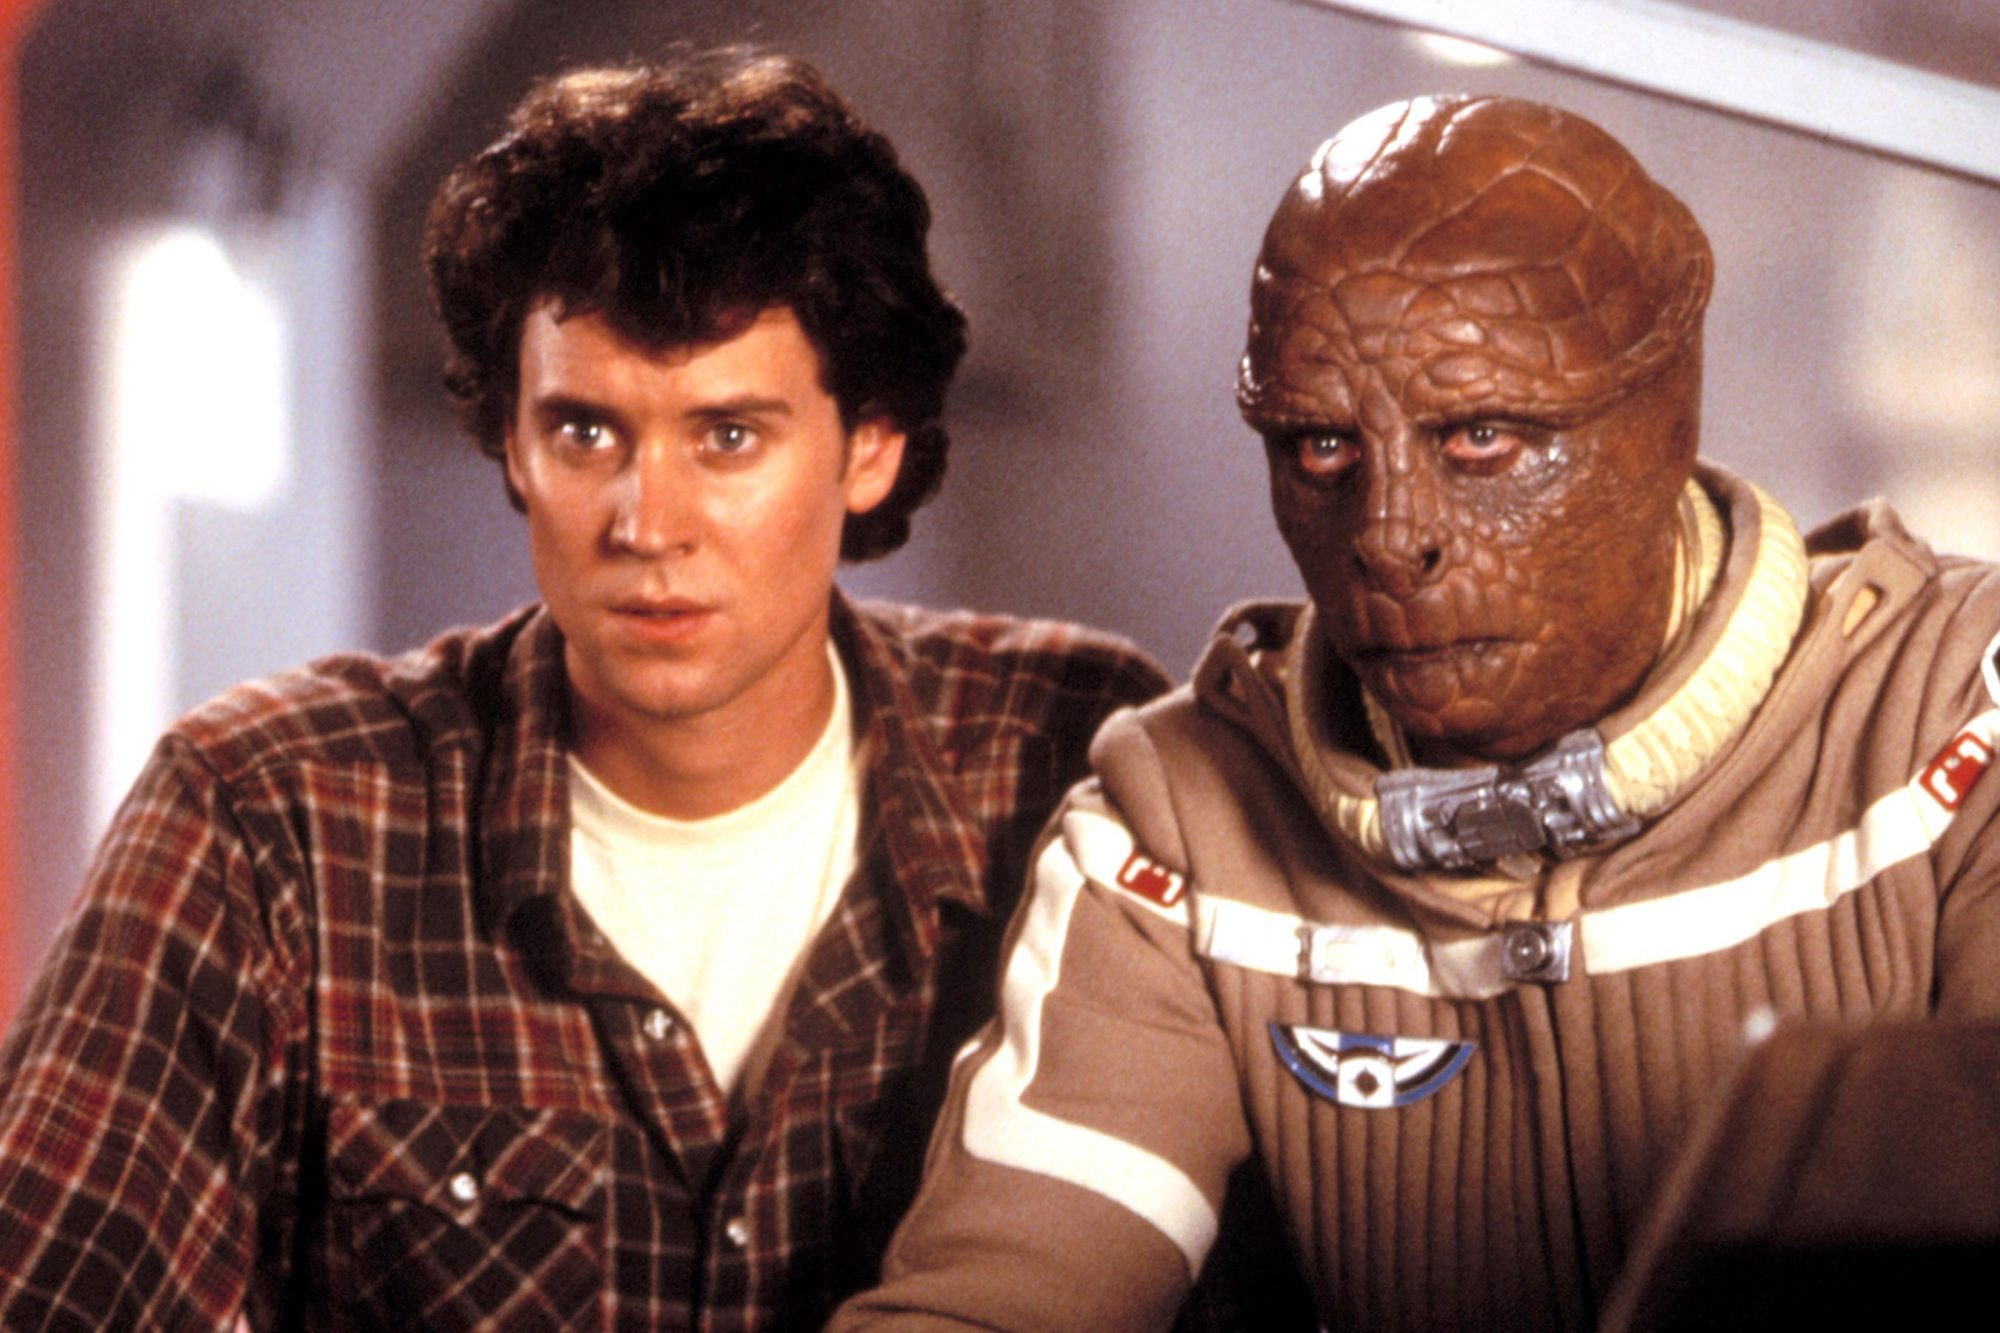 THE LAST STARFIGHTER, Lance Guest, Dan O'Herlihy, 1984. (c)Universal Pictures/ Courtesy: Everett Col